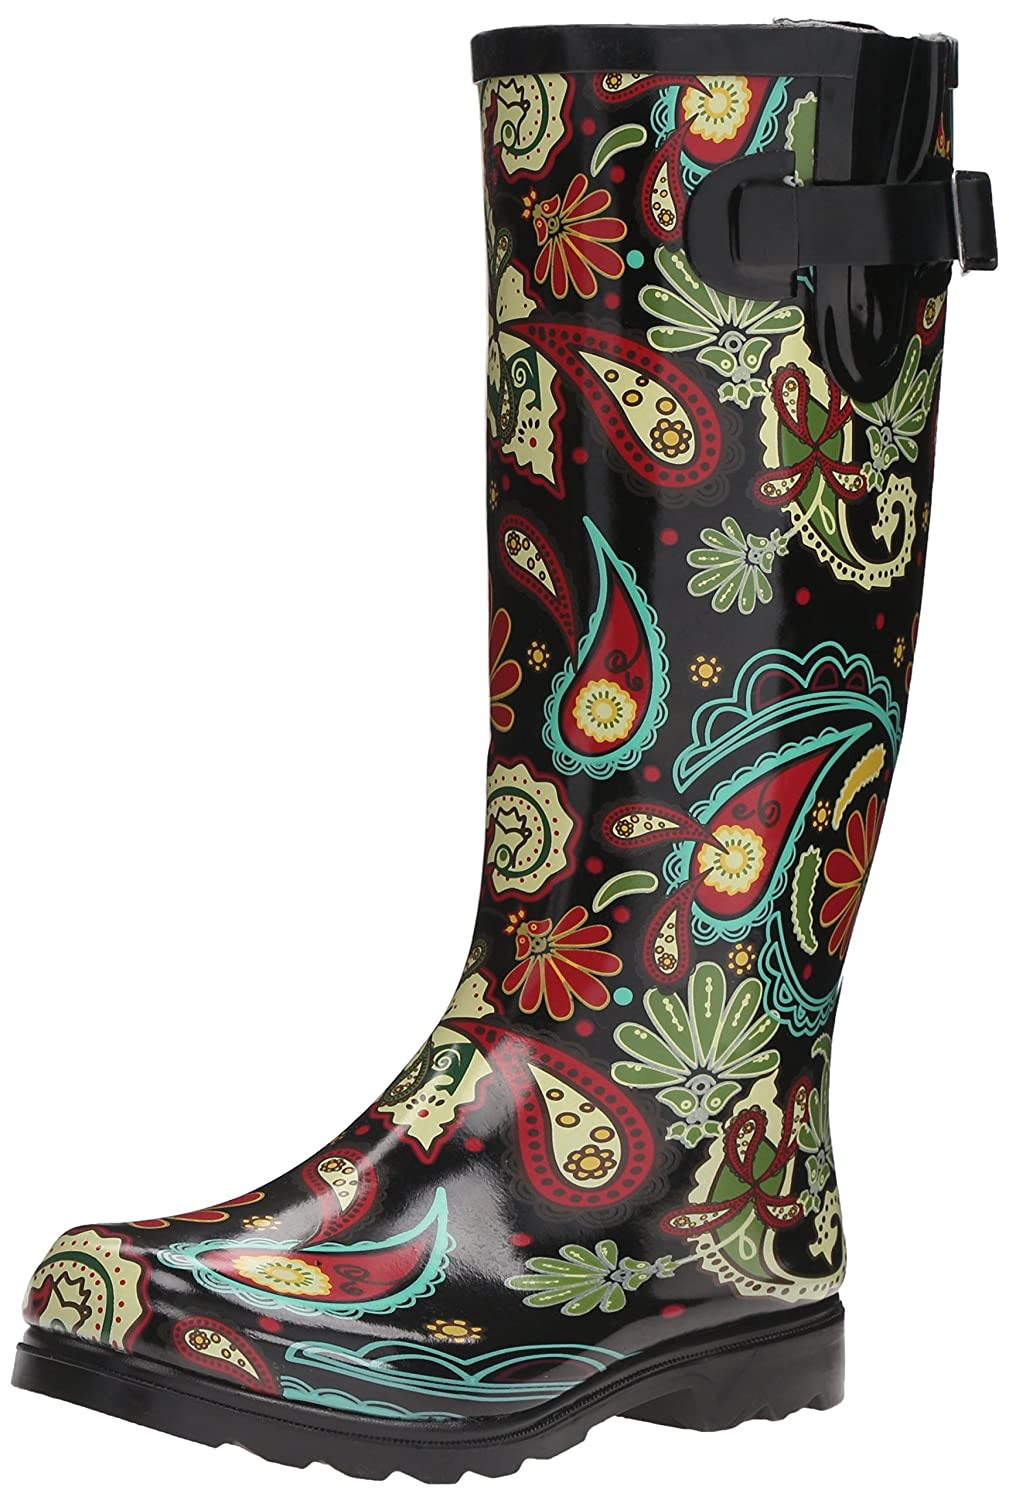 3f9ffb83822 Nomad Women's Puddles Rain Boot